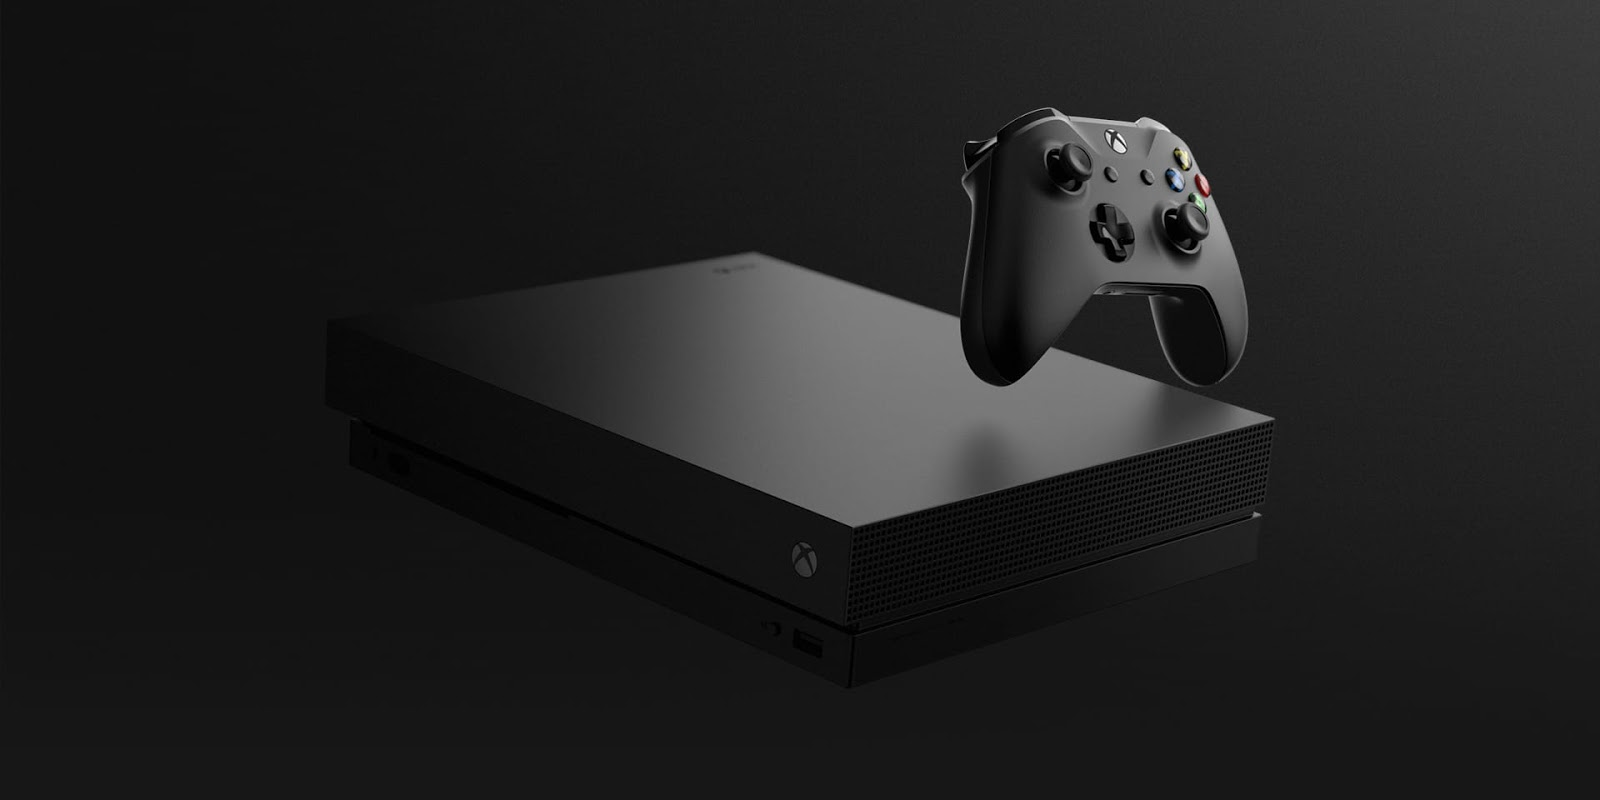 Xbox One X: Microsoft's Most Powerful Game Console